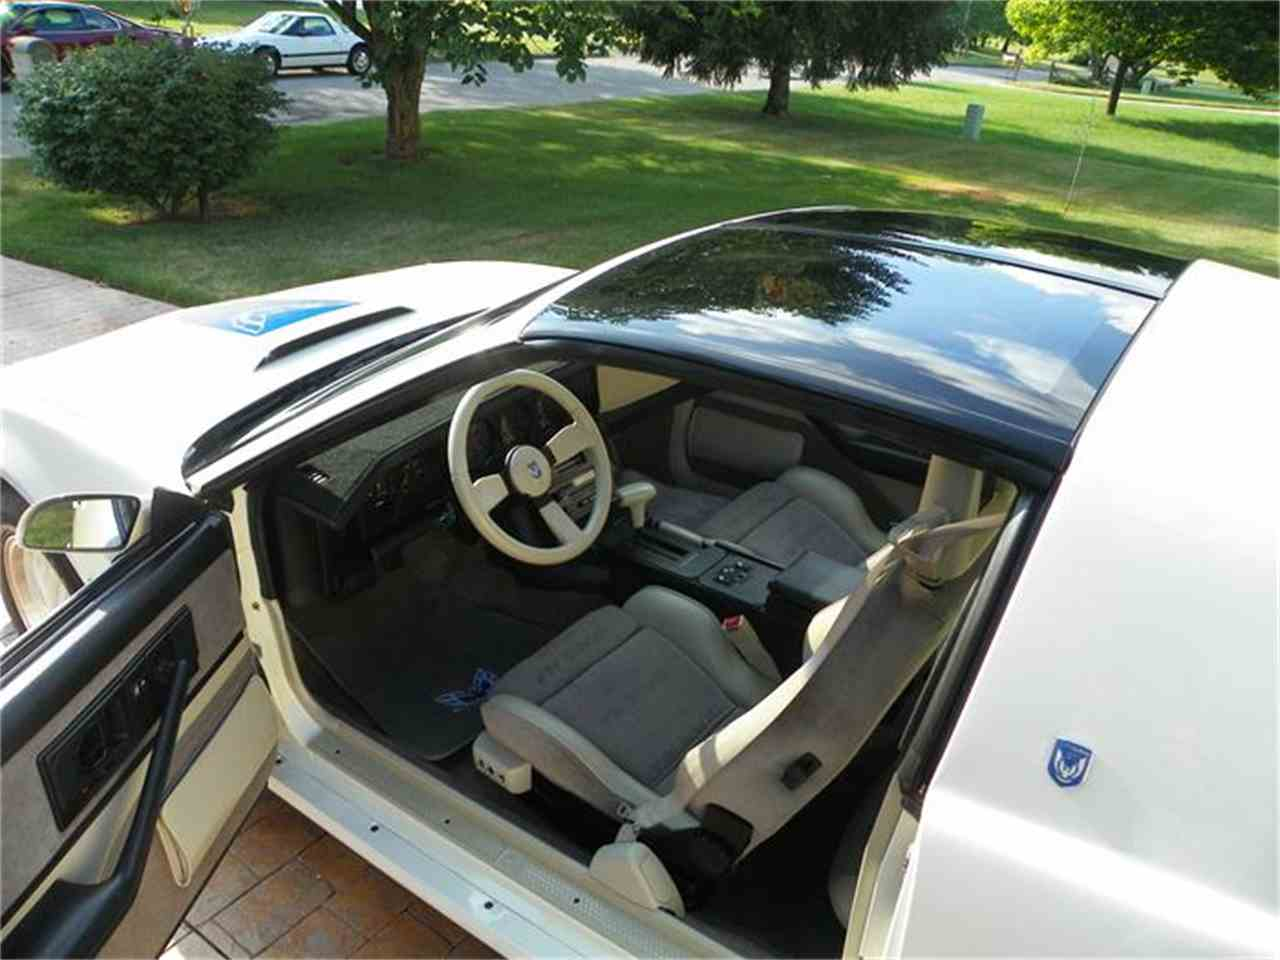 Large Picture of 1984 Pontiac Firebird Trans Am - $19,000.00 Offered by a Private Seller - 7GHL